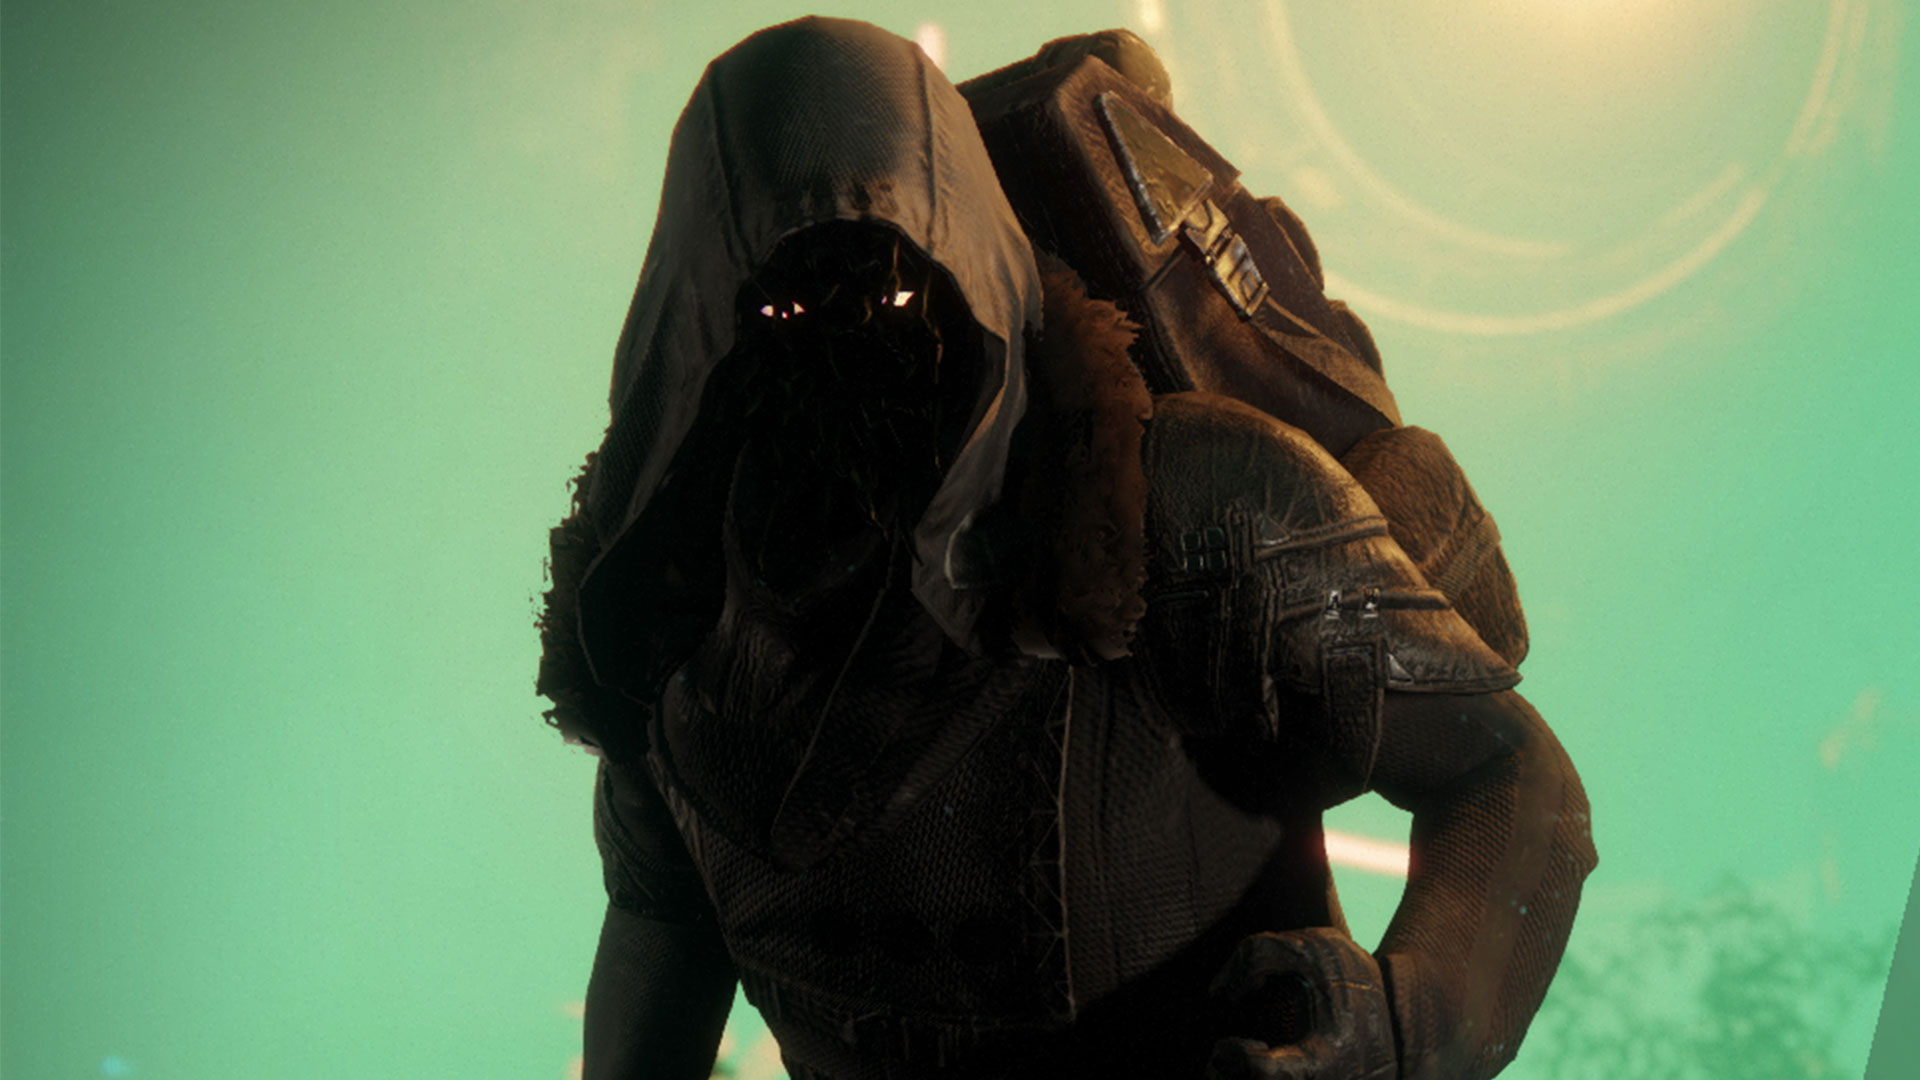 Destiny 2 Xur location and items, June 28 - July 1